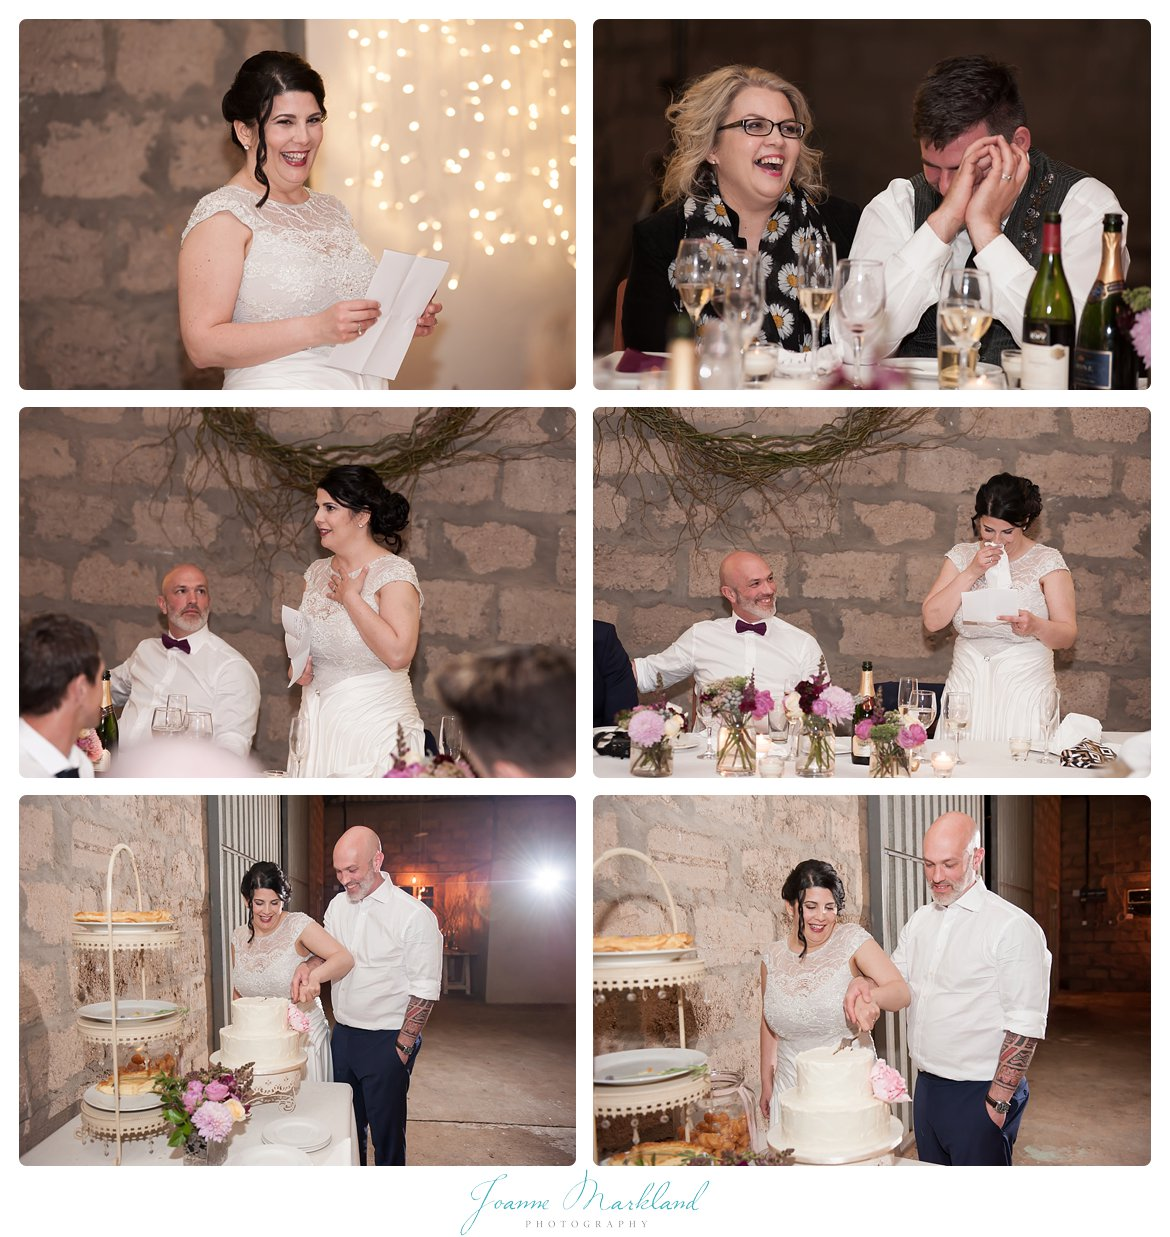 boorwater-wedding-hopefield-west-coast-cape-town-joanne-markland-photography-052